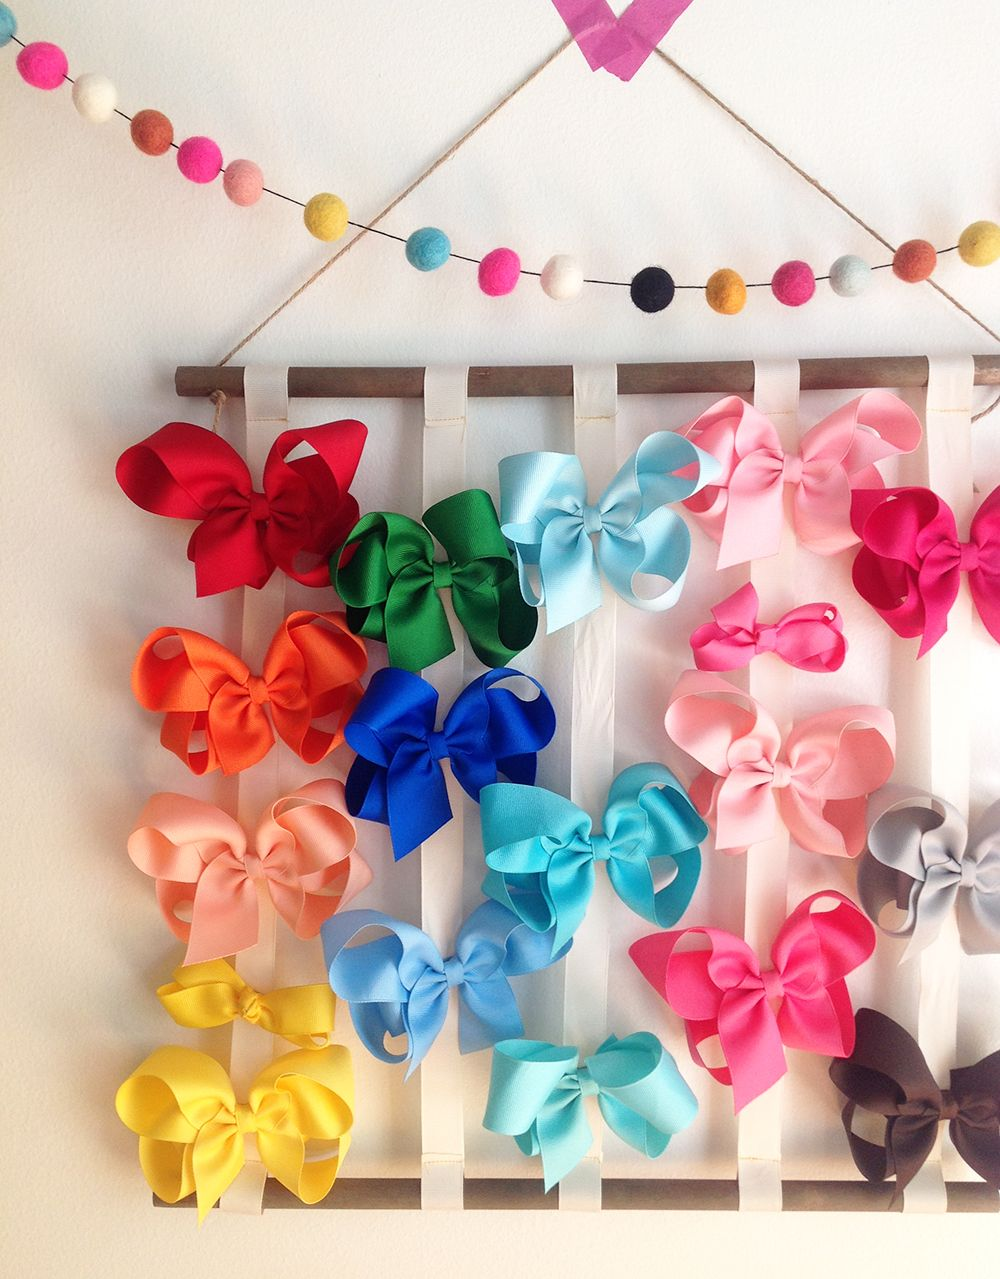 Hair Bow Hanger Diy Hair Bow Holder Diy Hair Bows Hair Bow Hanger